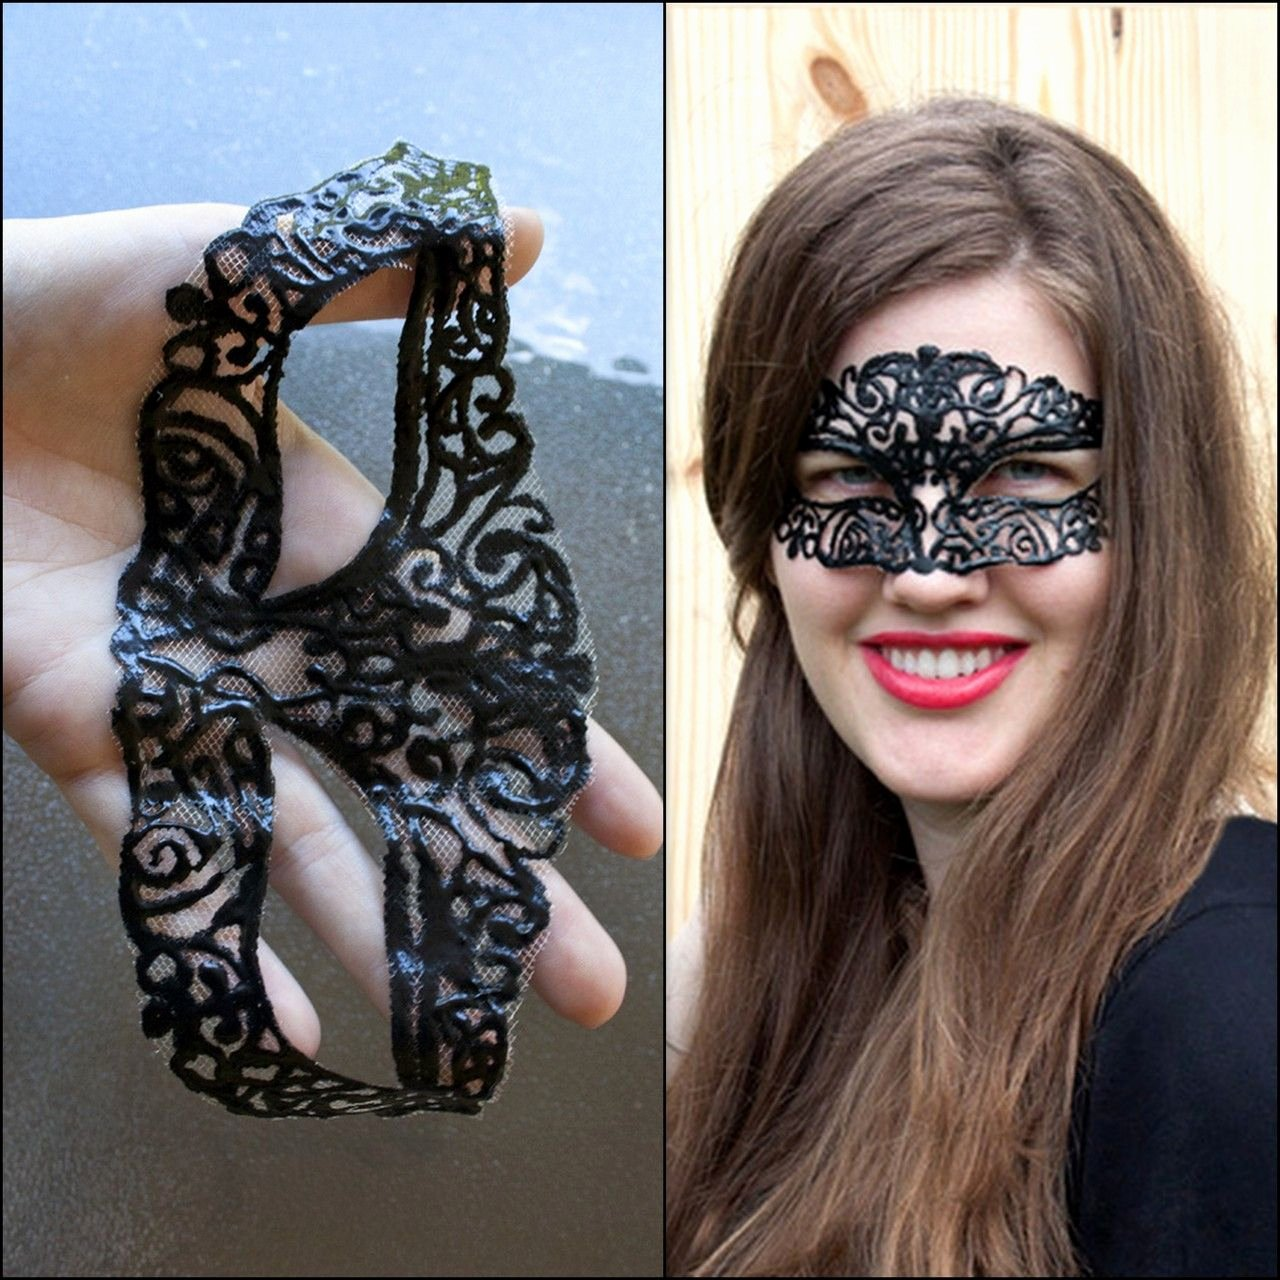 Diy Masquerade Mask Template Best Of Diy Masquerade Mask Tutorial and Template From Sprinkles